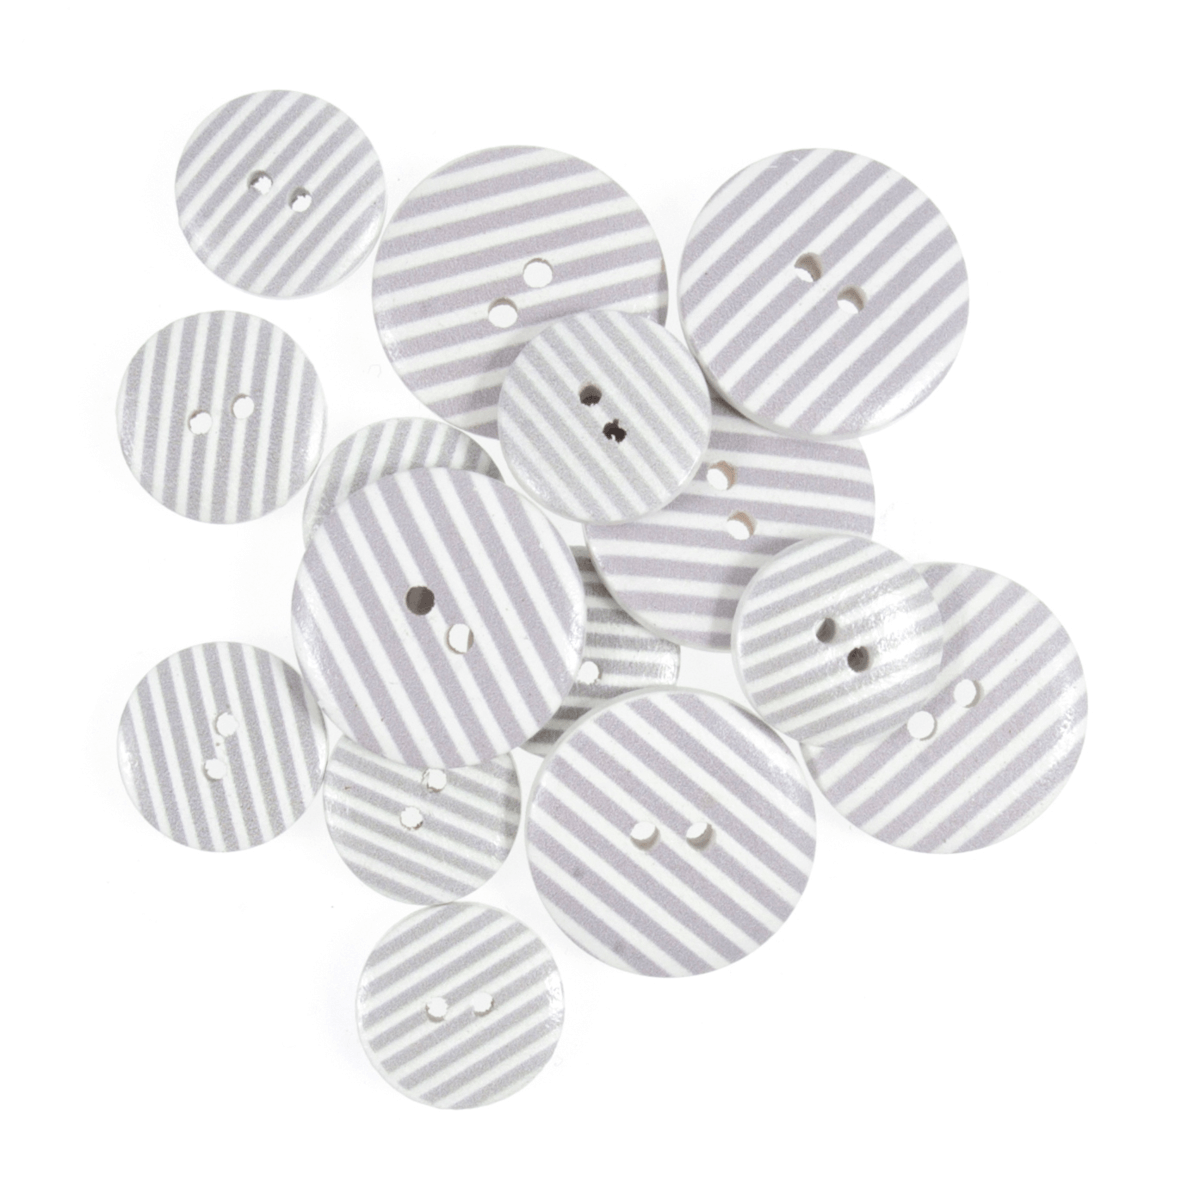 15 x Assorted Candy Stripes Wooden Craft Buttons 18mm - 25mm